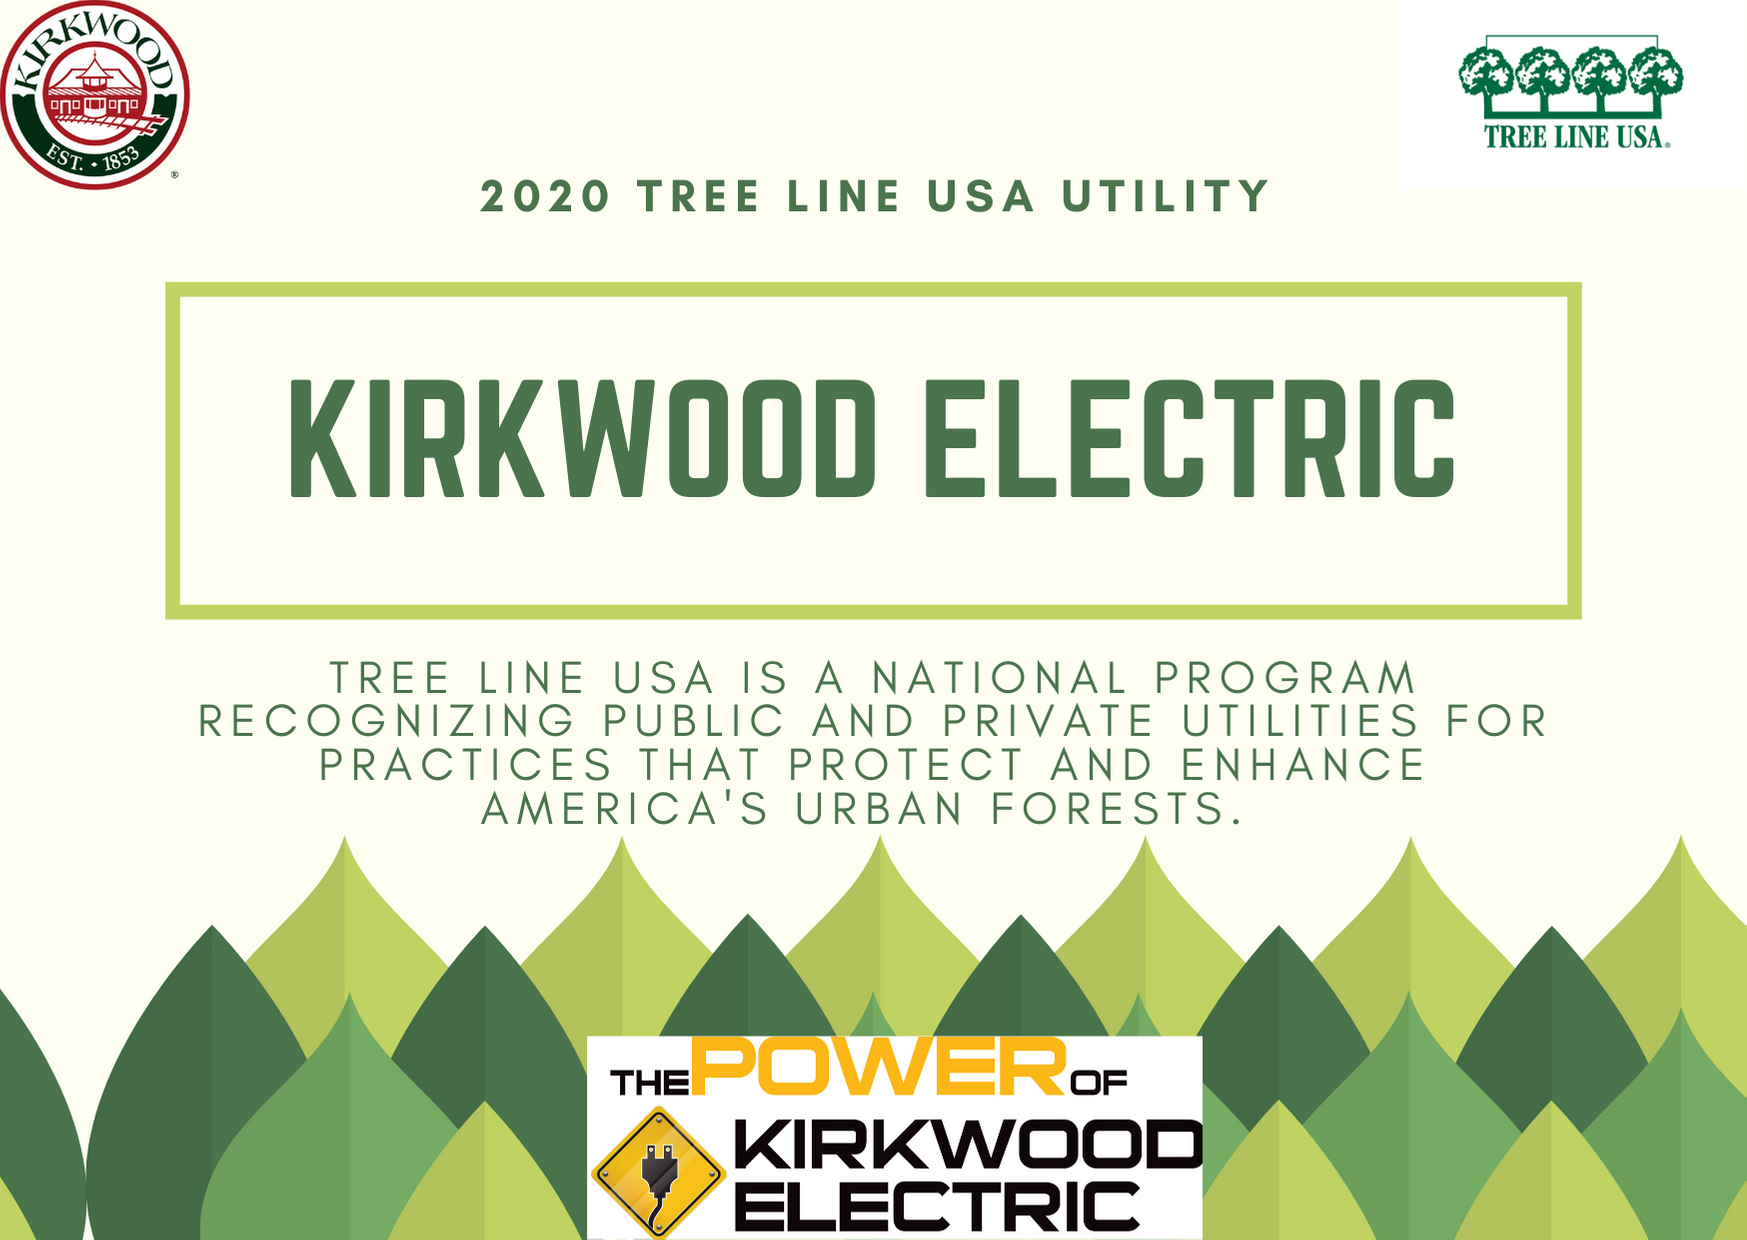 Kirkwood Electric Named 2020 Tree Line USA